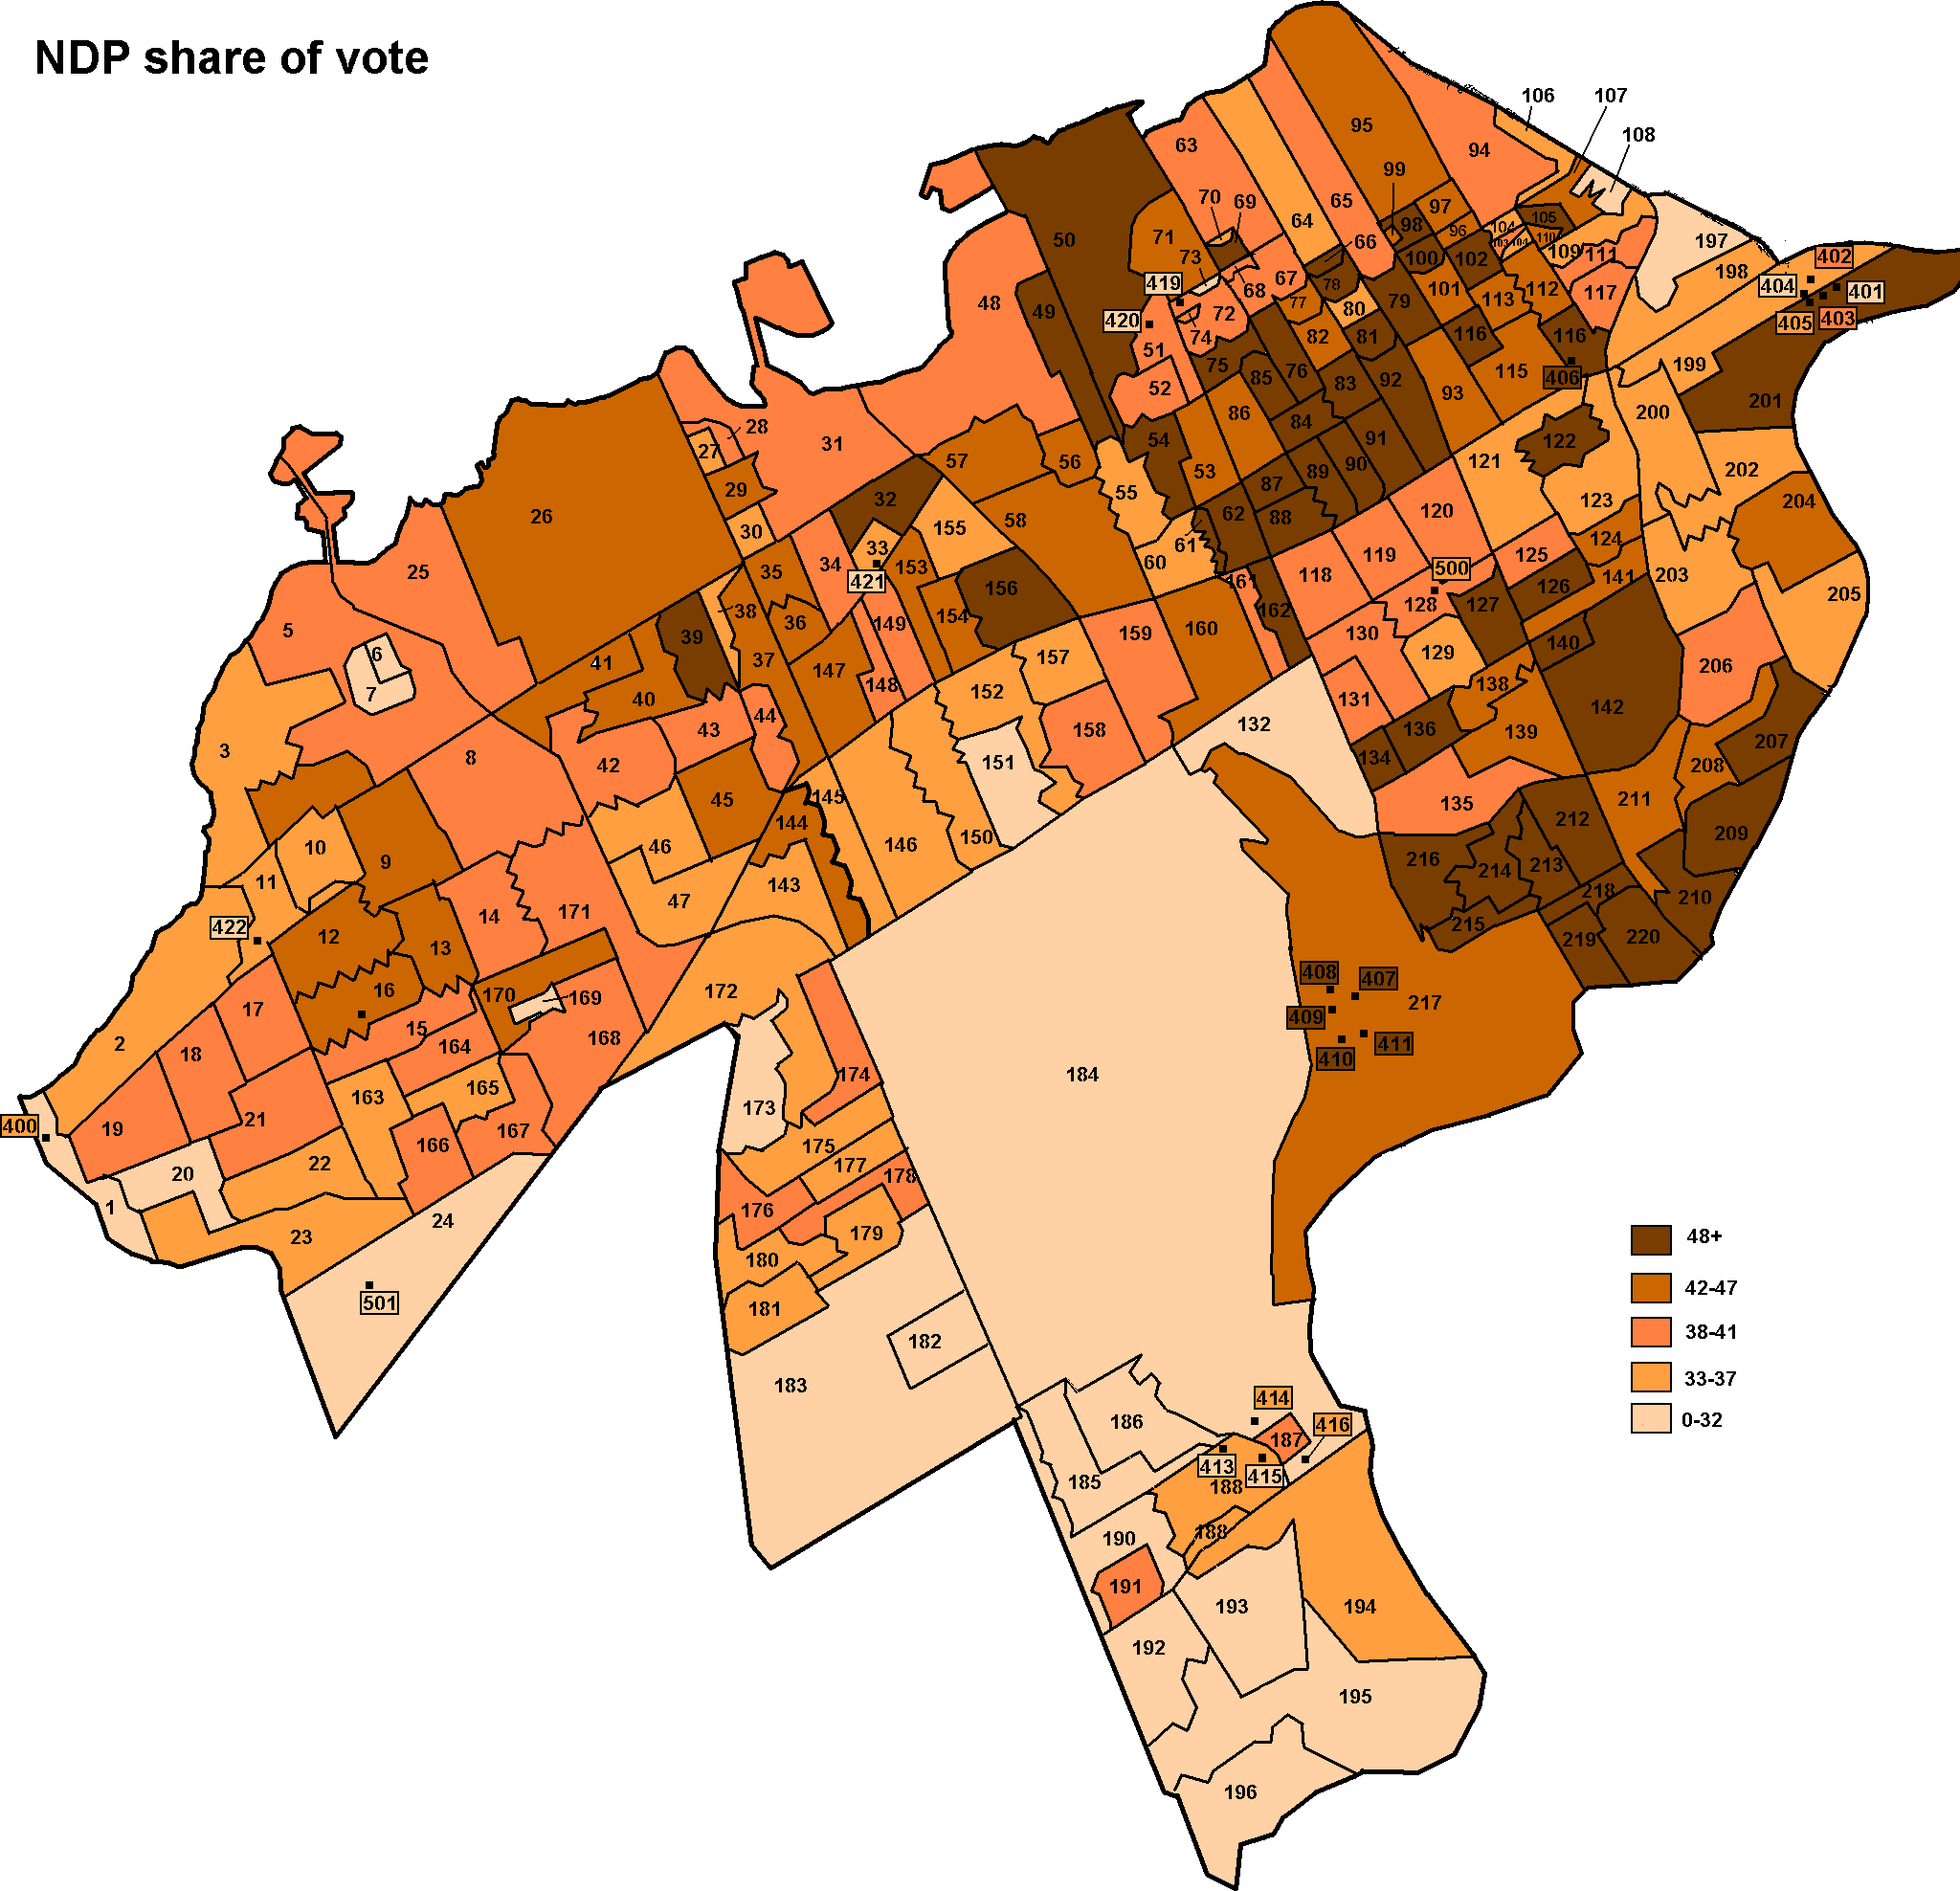 2004 ndp vote percentage by poll.png